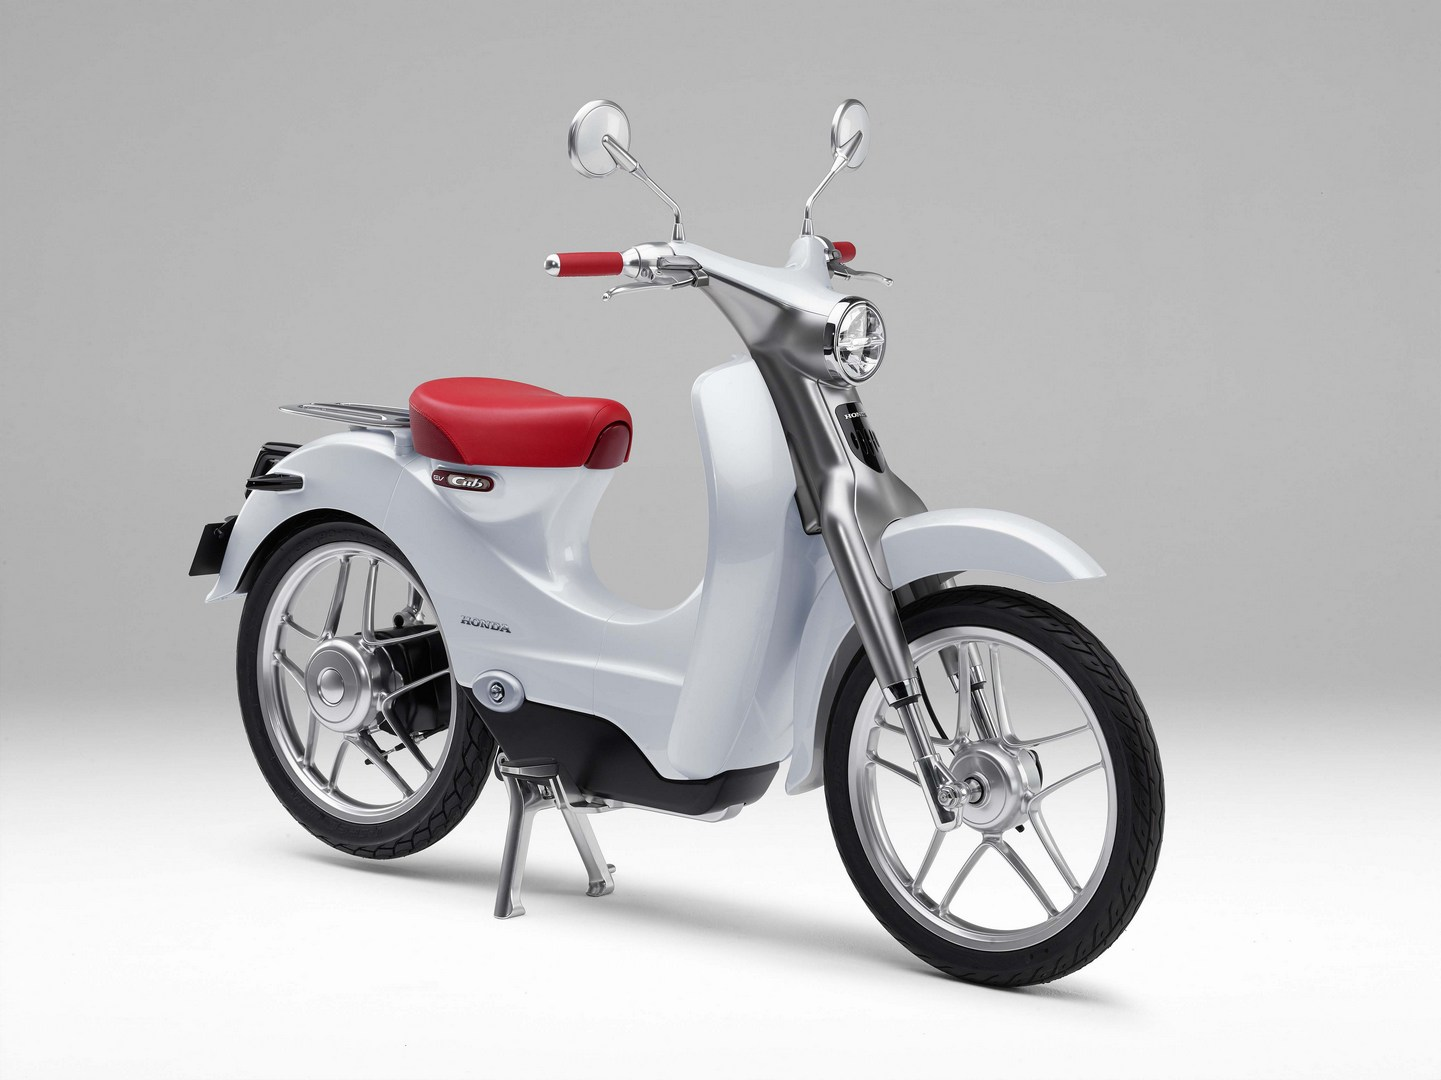 electric honda ev cub arrives in 2018 autoevolution. Black Bedroom Furniture Sets. Home Design Ideas